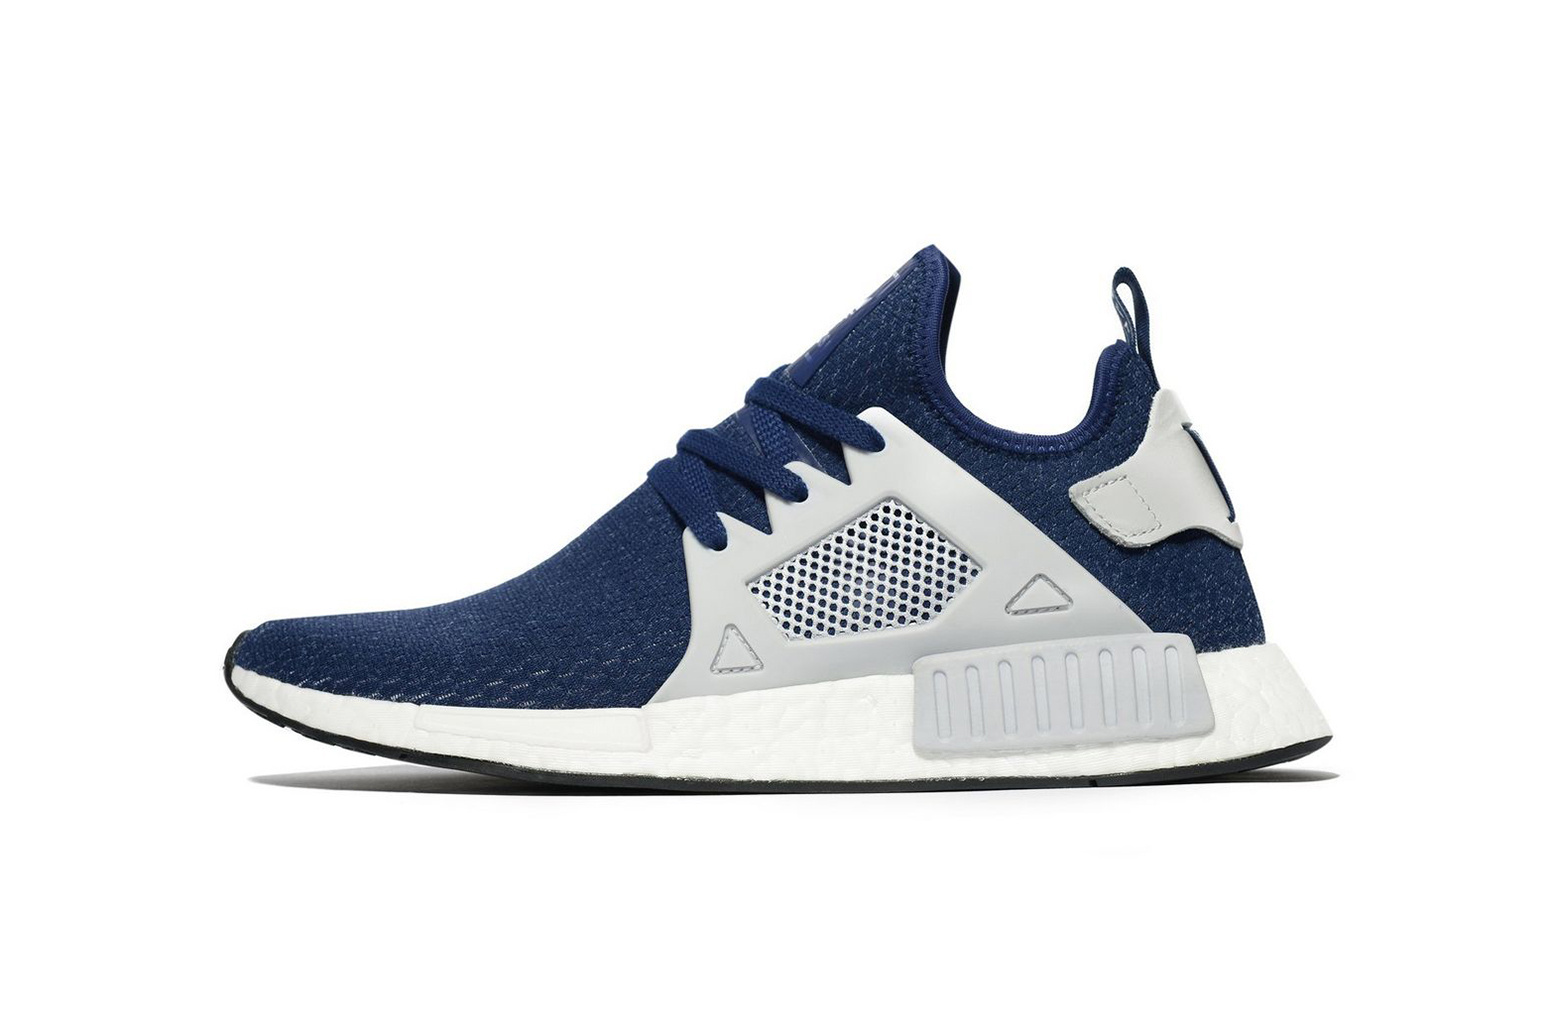 adidas-nmd-xr1-jd-sports-exclusive-3